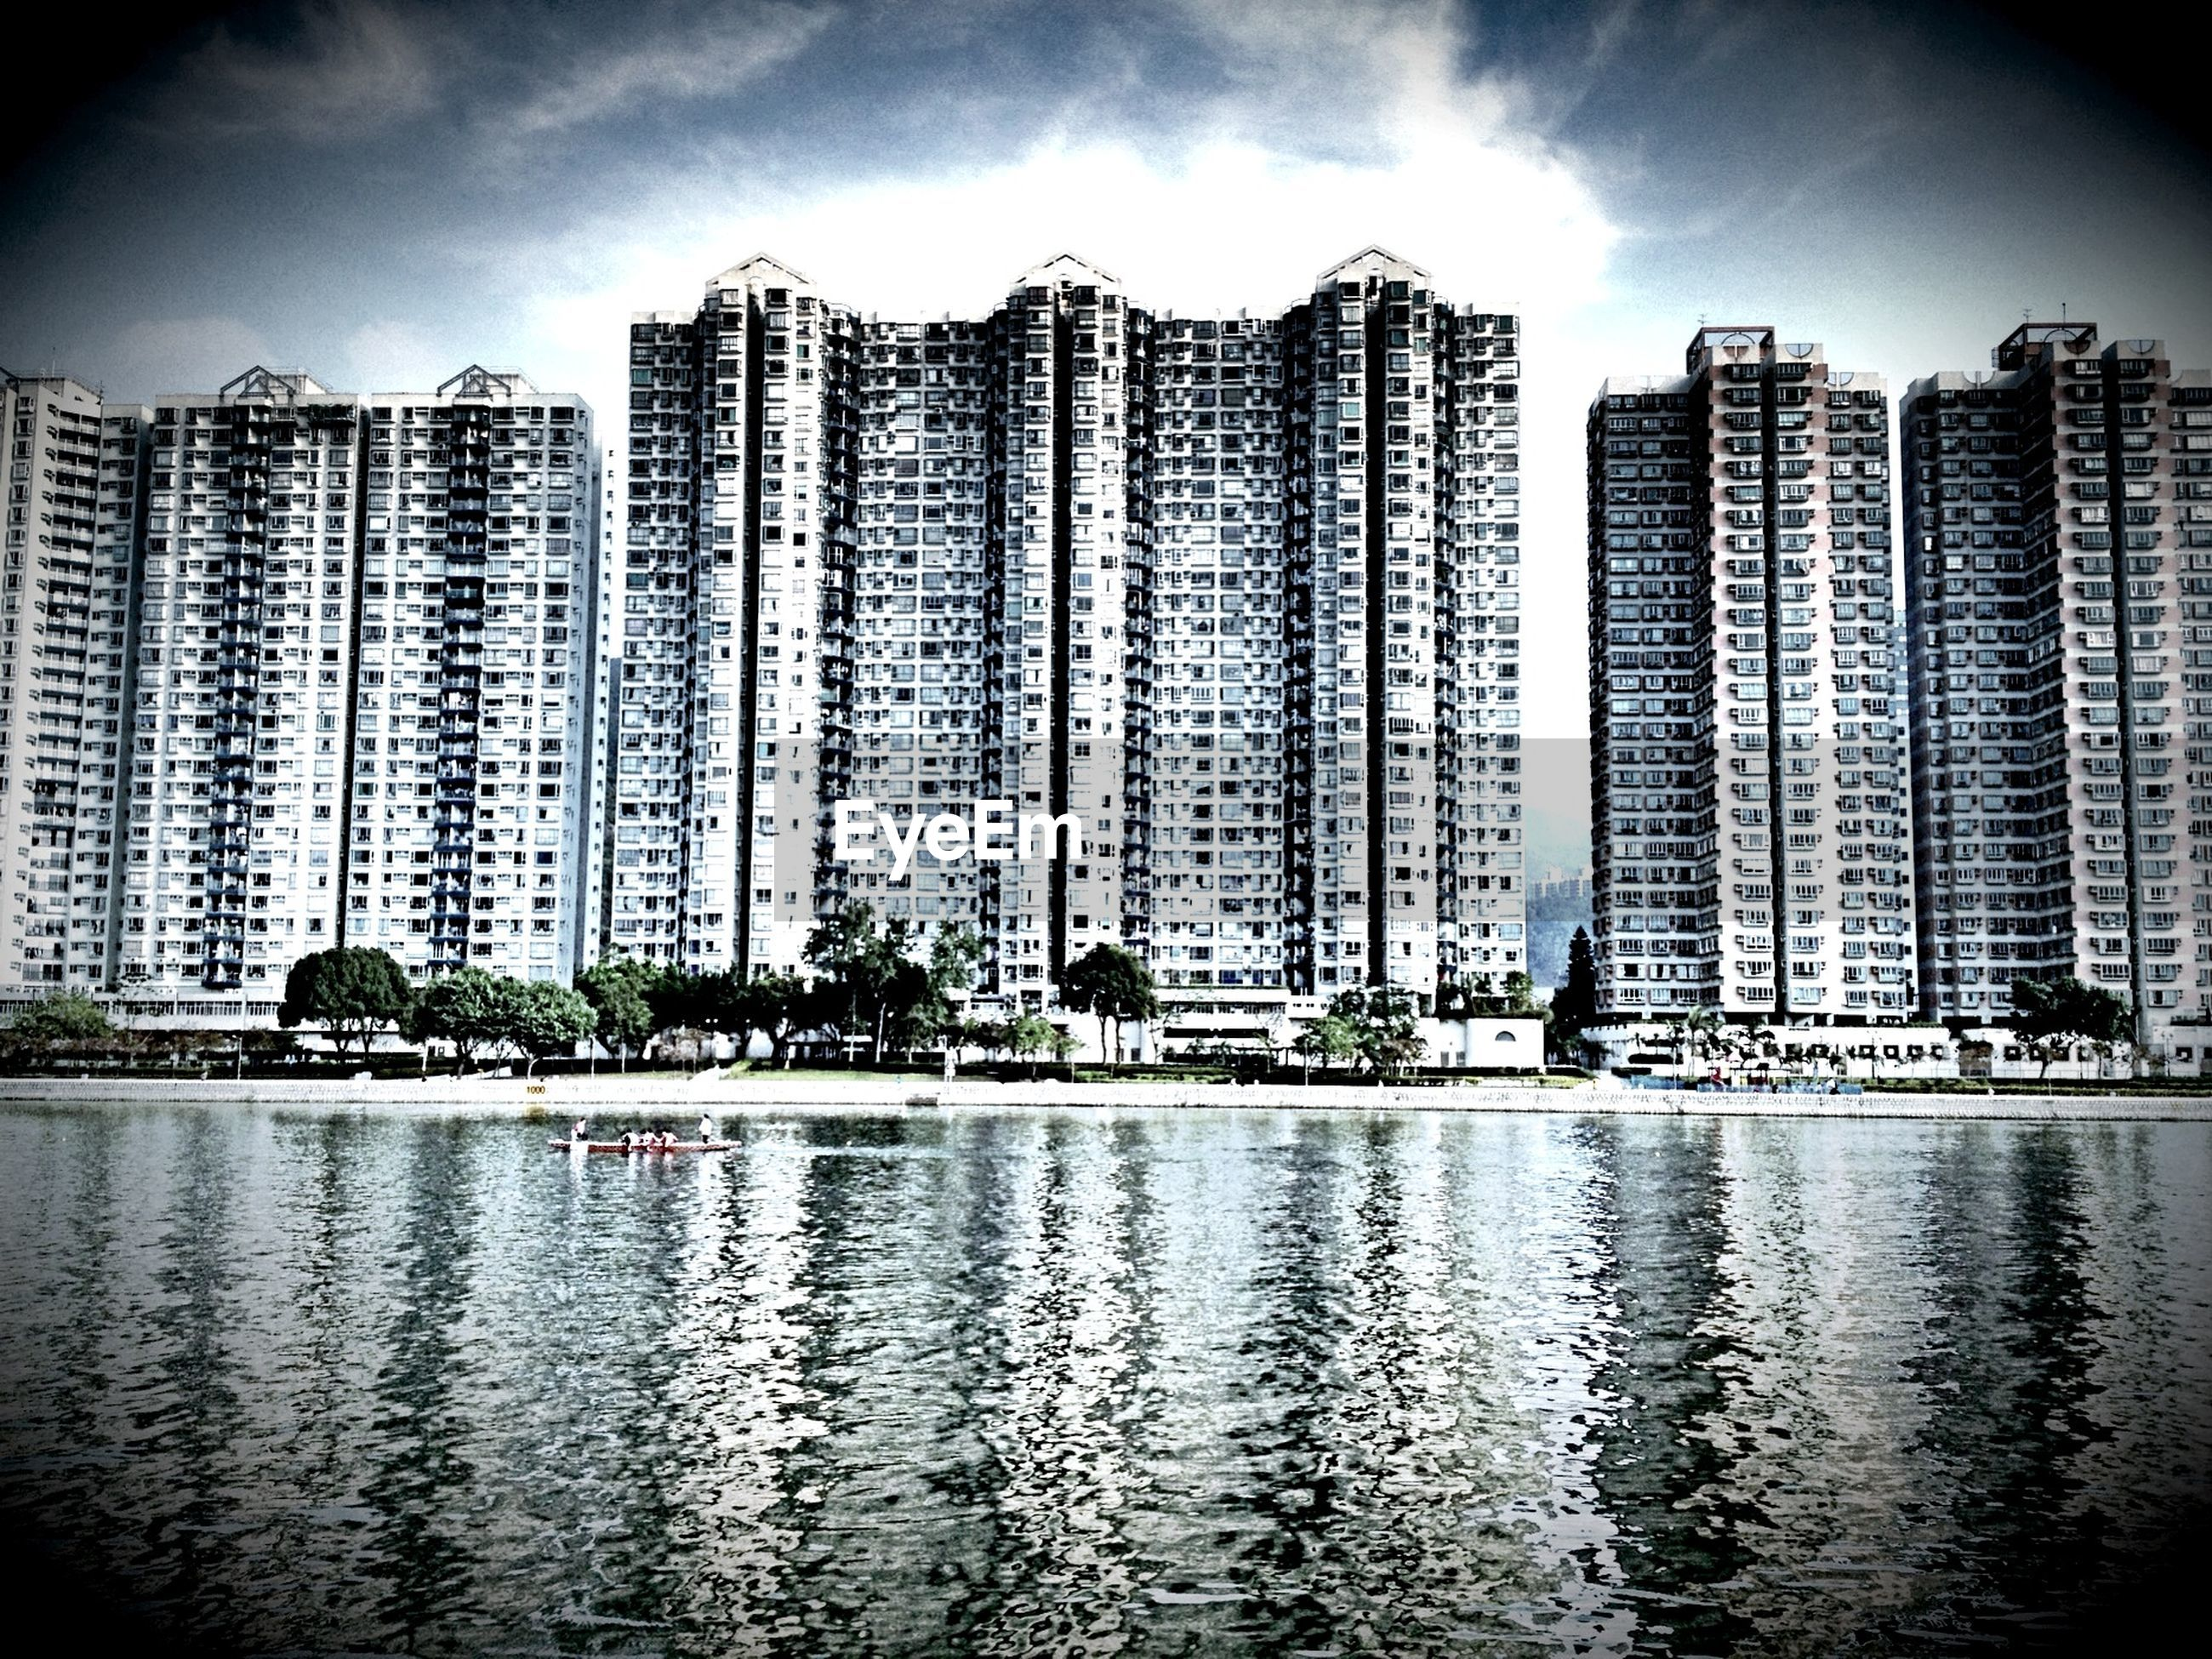 River in front of buildings against cloudy sky